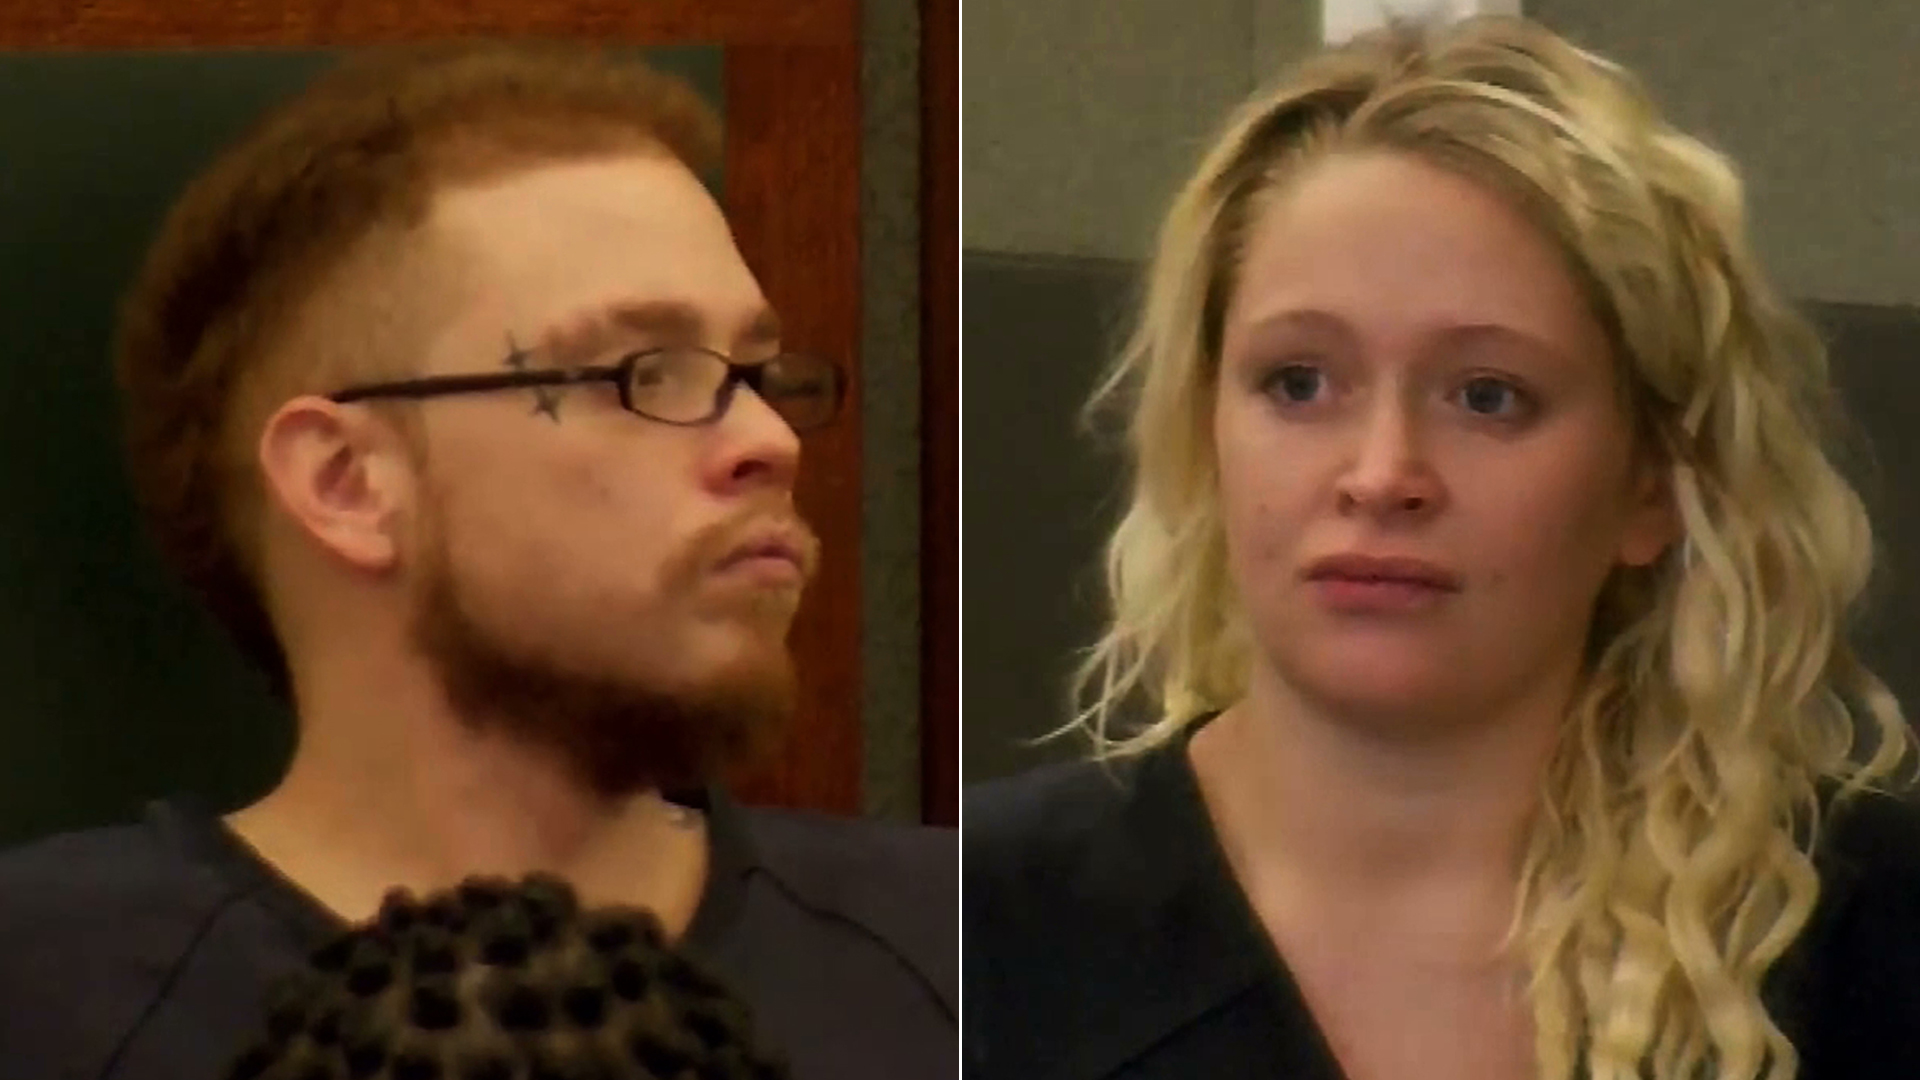 Jon Kennison, left, and Kelsey Turner appear in court in Las Vegas on June 13, 2019. (Credit: KVVU via CNN)